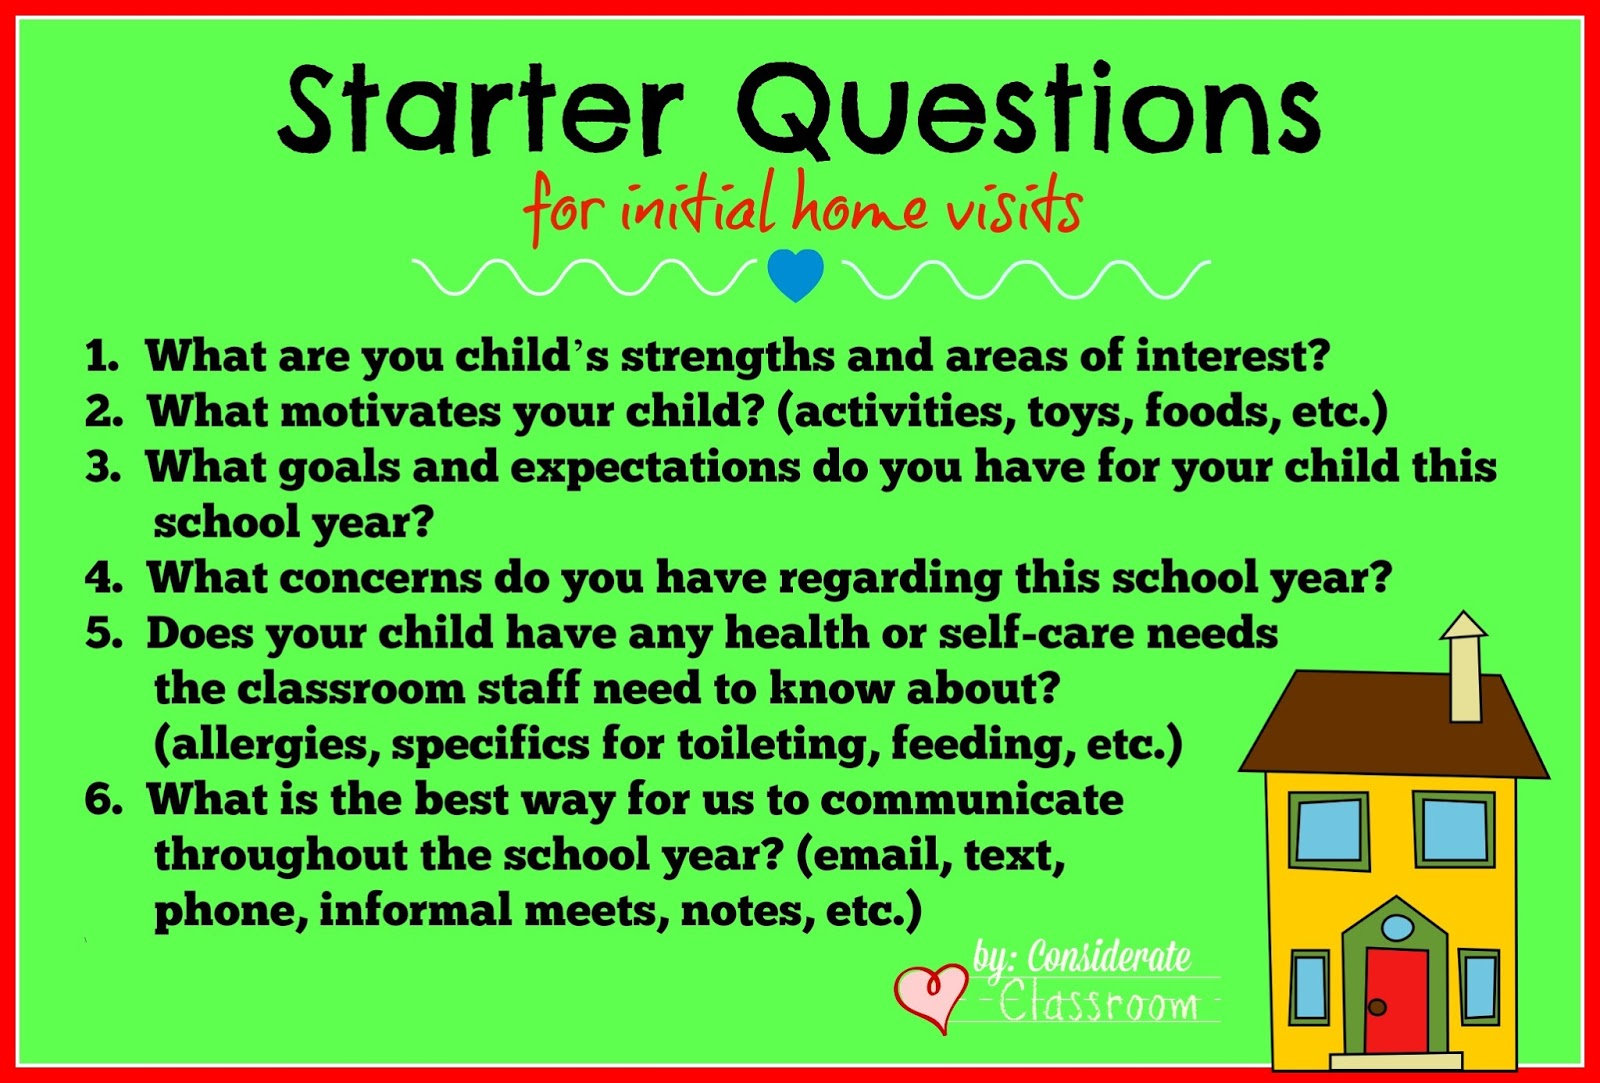 considerate classroom early childhood special education edition in the beginning i used these questions like an interview but as i became more comfortable home ing i began to be more flexible there use